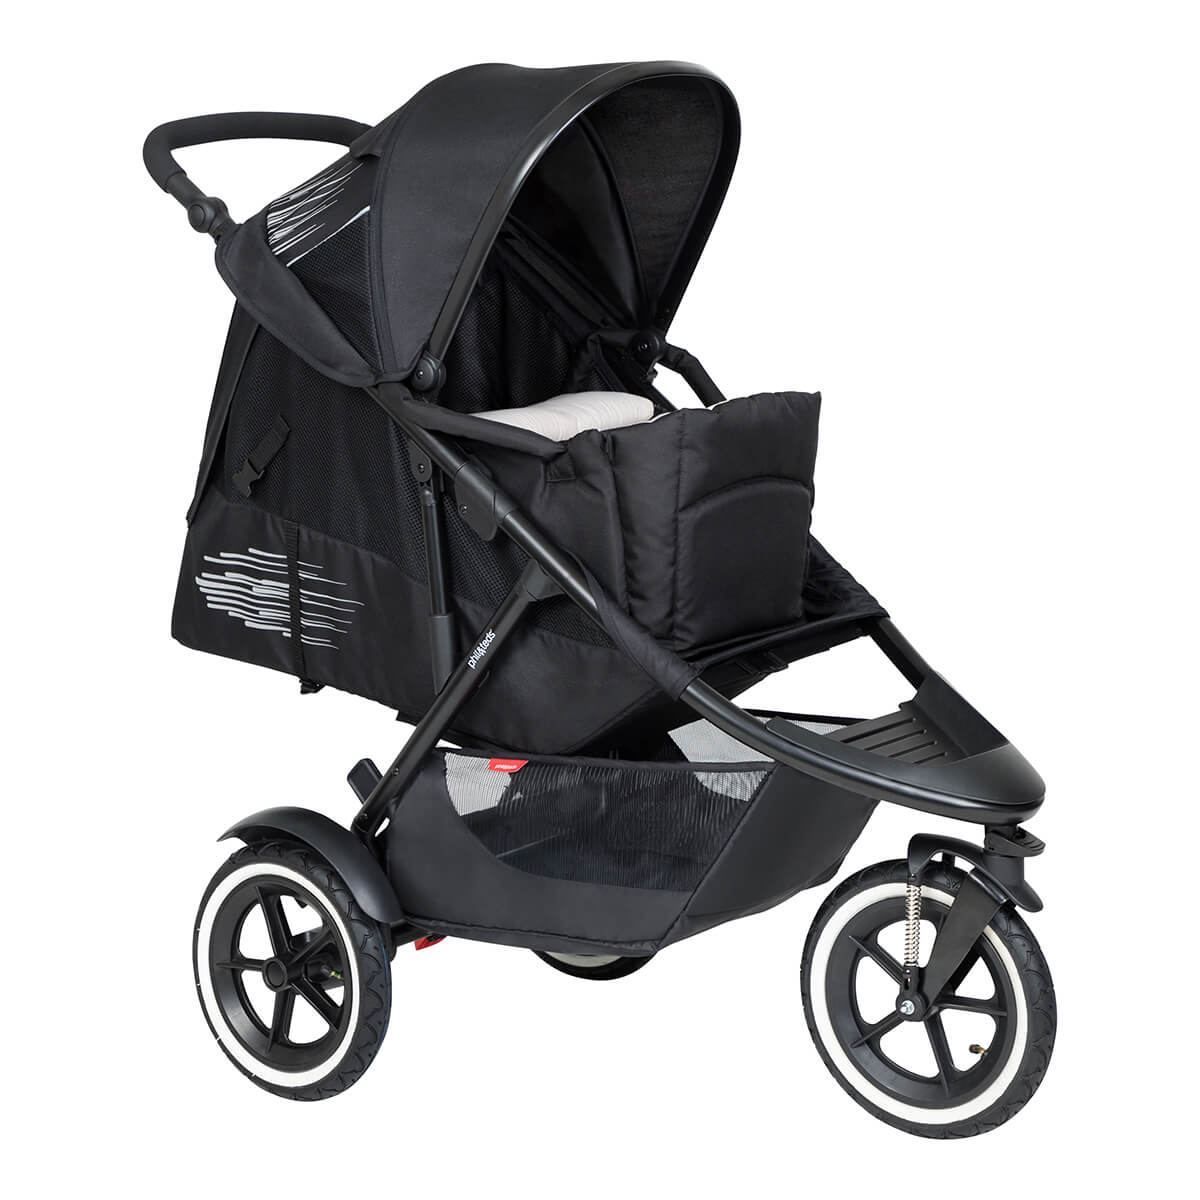 https://cdn.accentuate.io/4363395924021/19118870331445/philteds-sport-buggy-with-cocoon-full-recline-v1626403801034.jpg?1200x1200